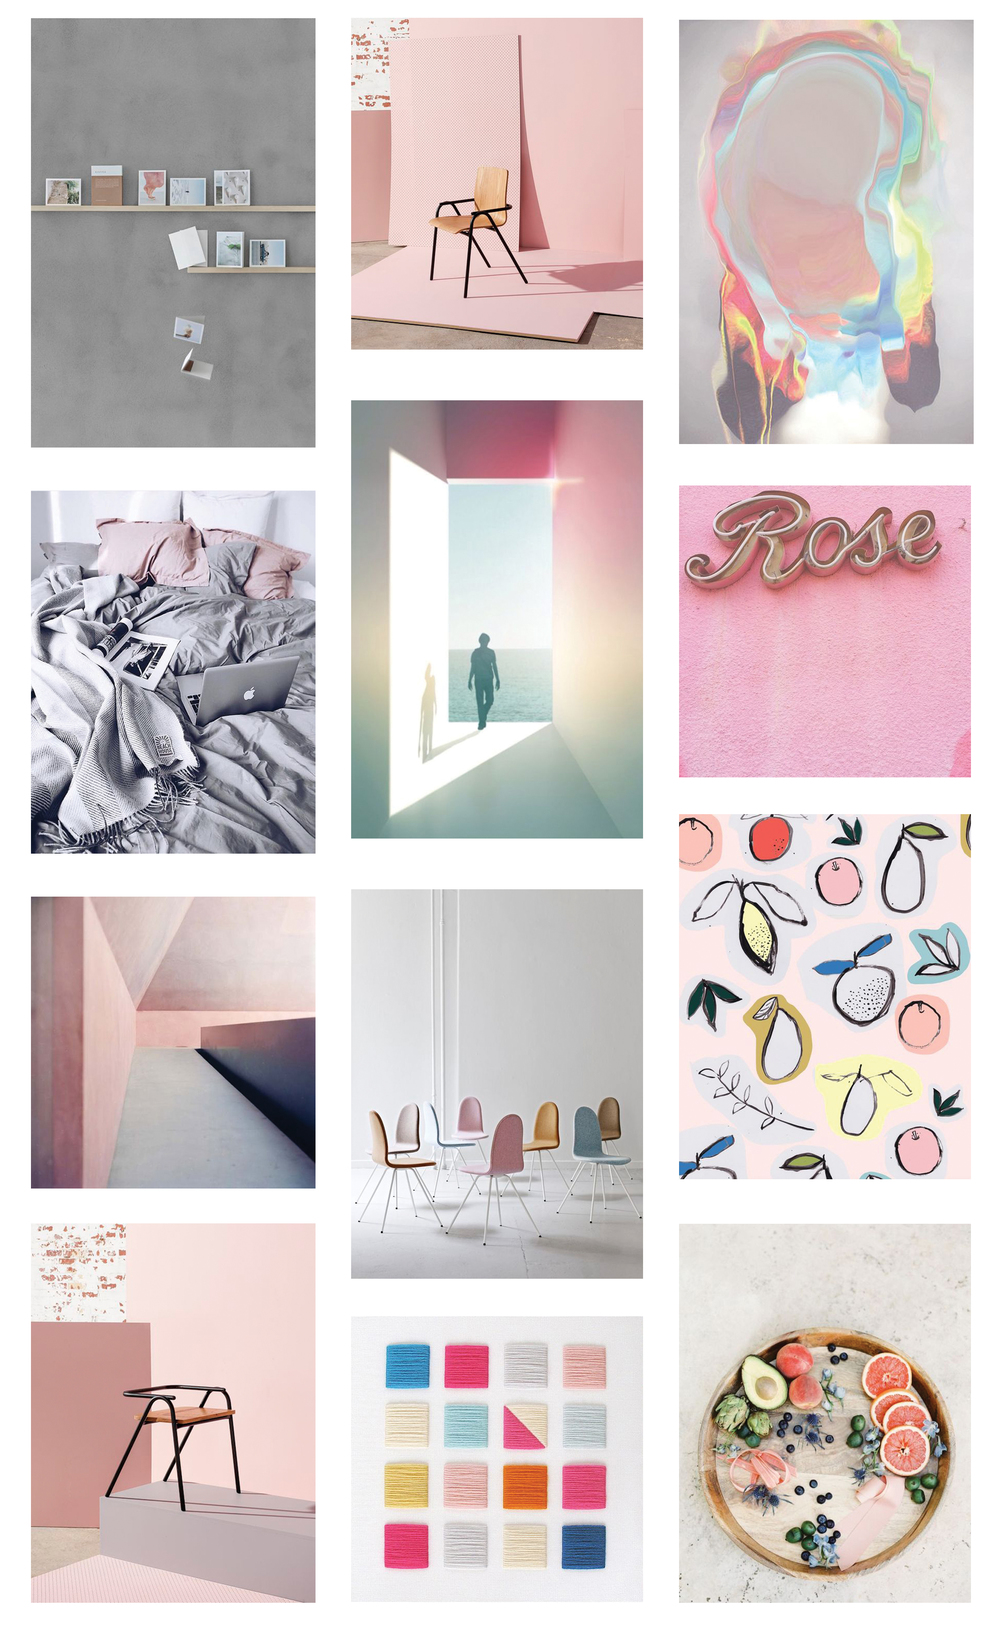 WEEKLY INSPIRATION WITH MONDAY MOOD BOARD 50 | THE PAPER CURATOR